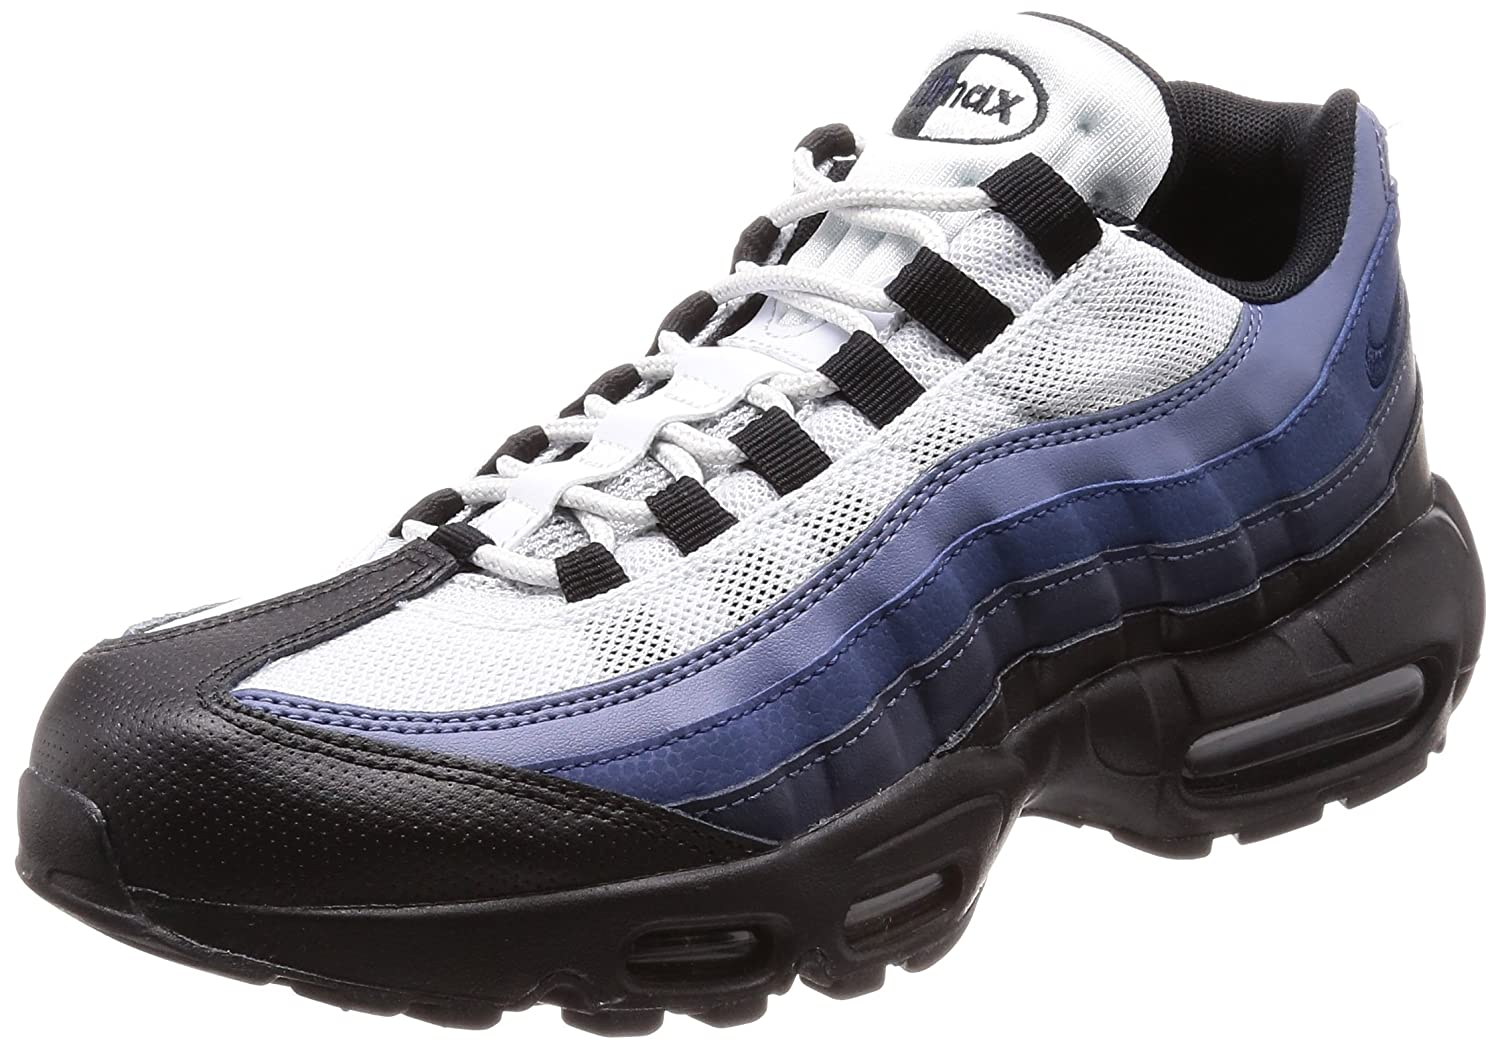 Black Obsidian Navy bluee Nike Air Max 95 No-Sew Men's shoes Grey